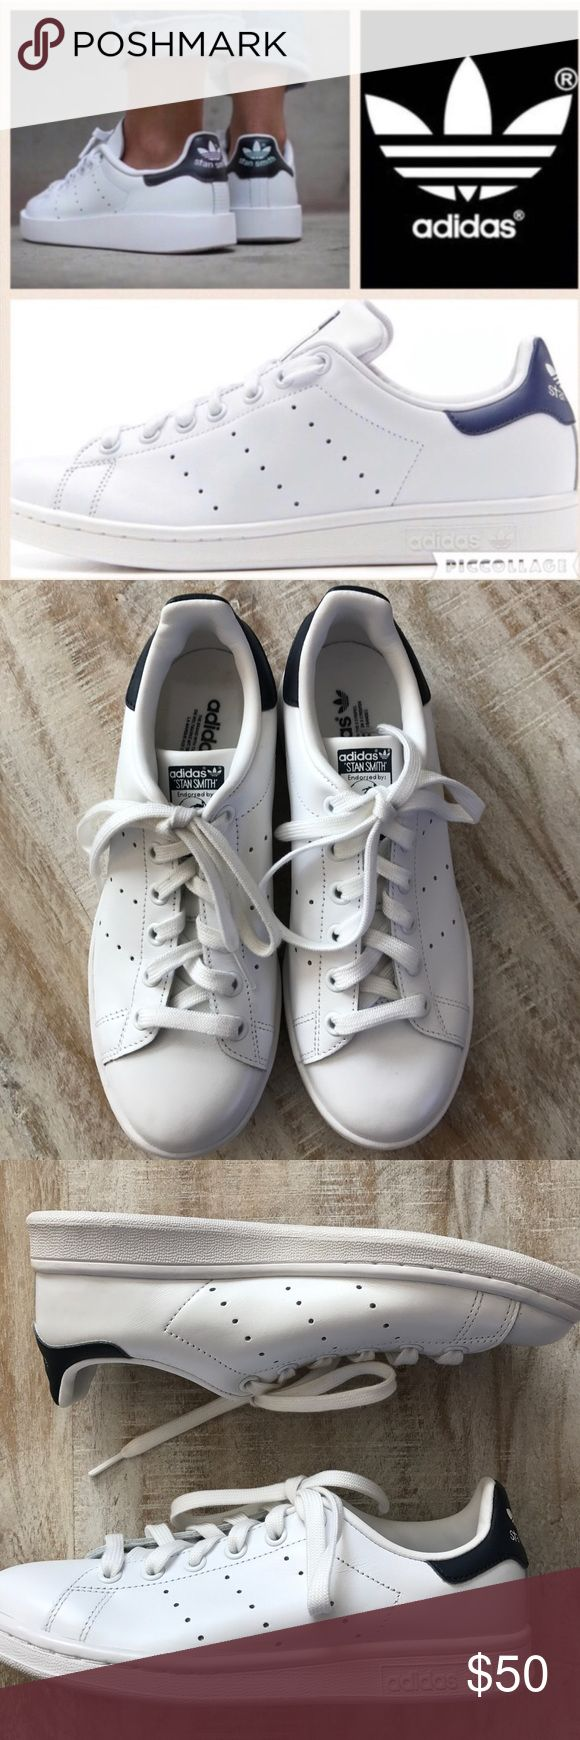 Adidas Stan Smith Sneakers/wht&nvy/men's 5-wmn 7 Hot Spring Style! The Stan Smith Sneaker from Adidas is flying off store shelves! This pair is the white and navy combo, and is a men's size 5, fits a women's 6.5 with a thicker sock, 7 with thin or no socks perfectly! Store sample/closeout/no box. Brand new condition, never worn outside the store as seen by the dirt-free soles! 🚫no trades, low offers not considered. Adidas Shoes Sneakers